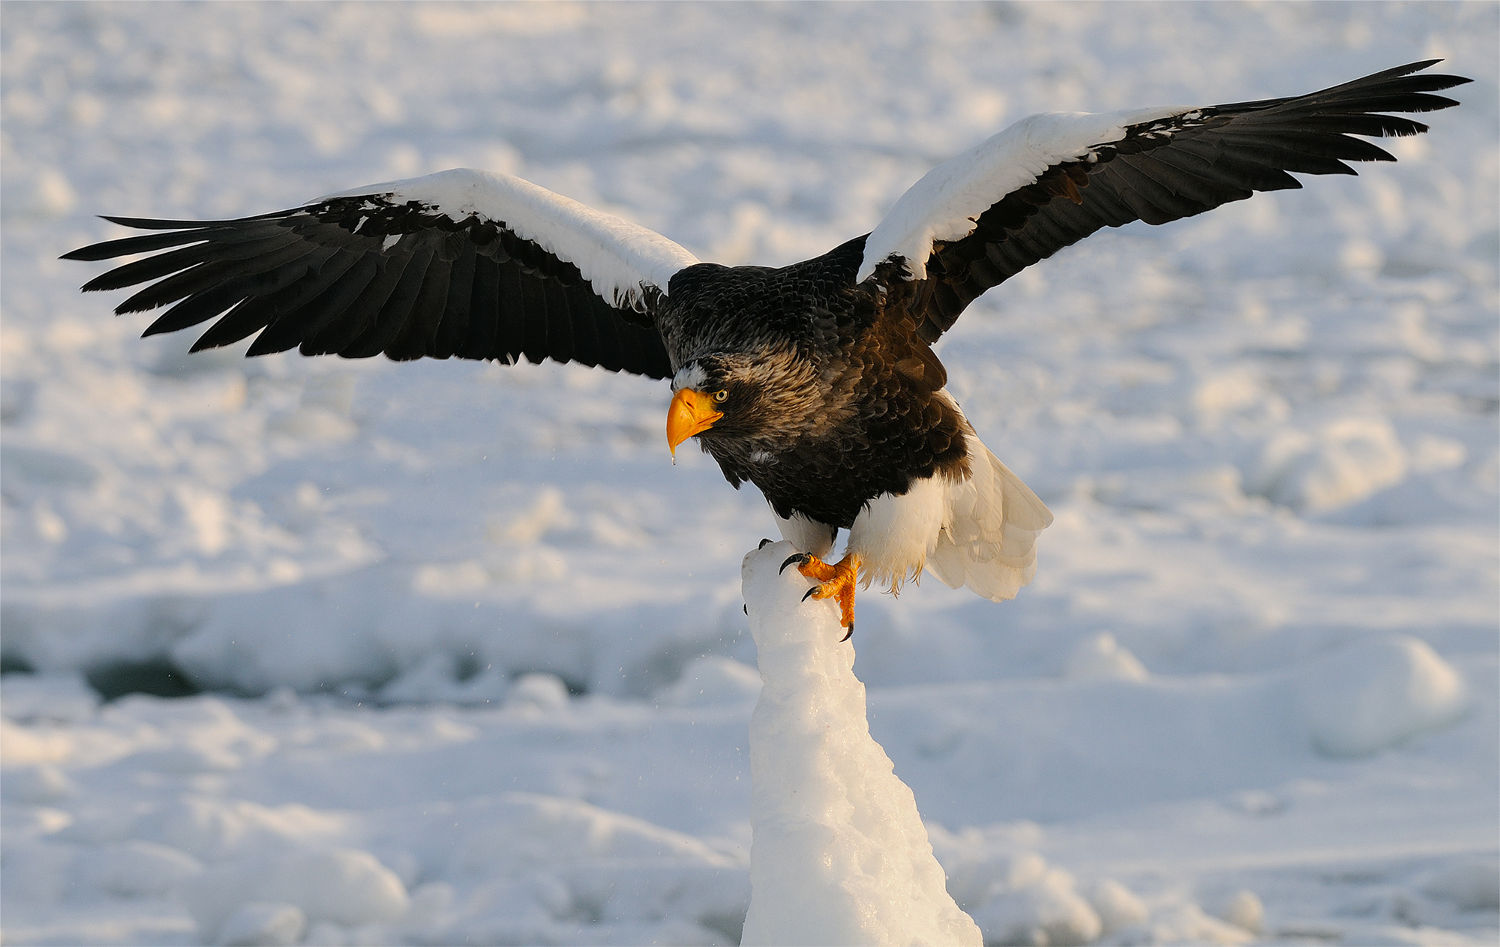 Drawn steller's sea eagle patriotism Pescatrice Gigante Pigargo Sea Steller's